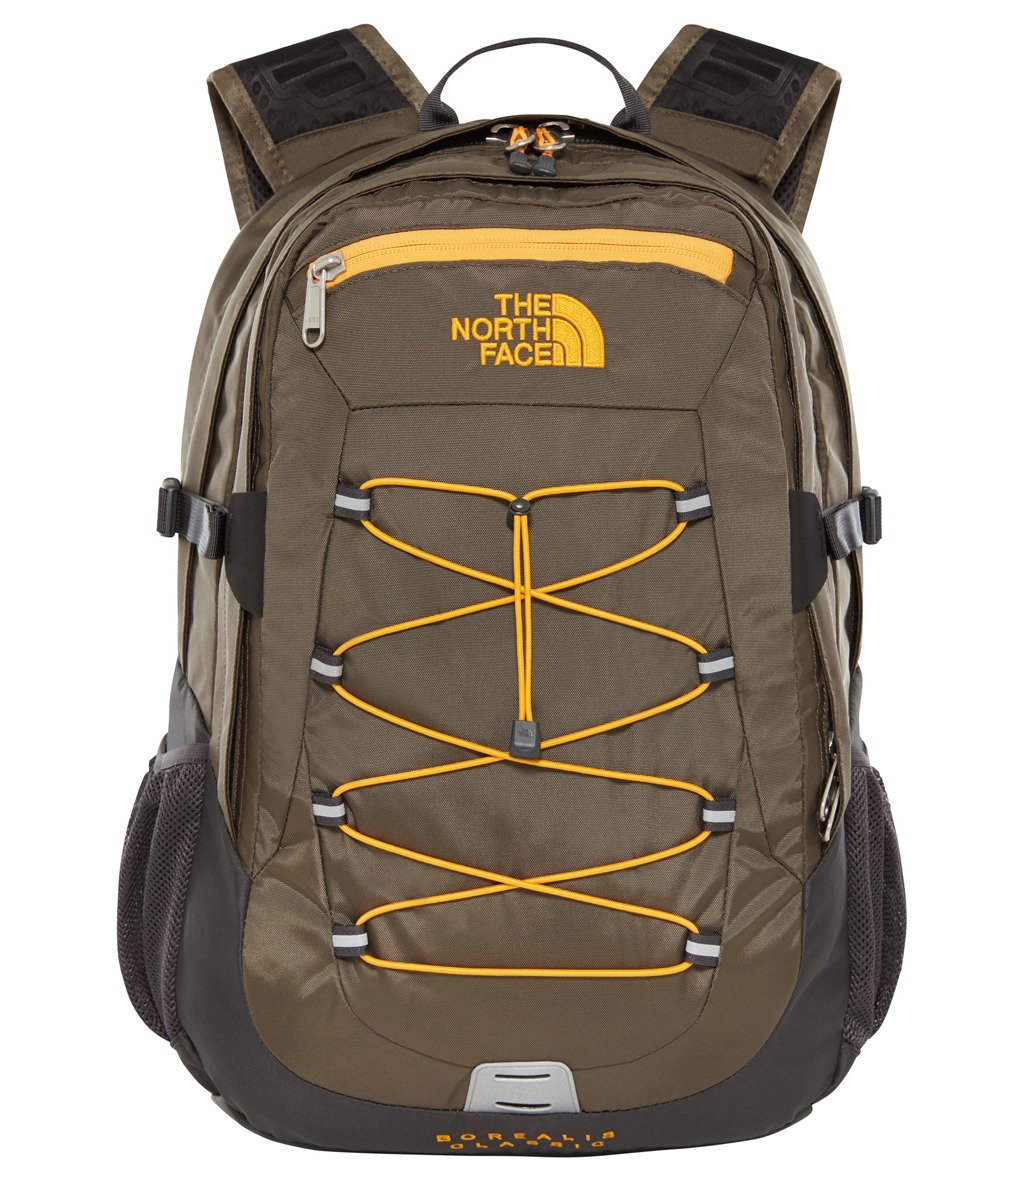 4612c37efc392 Plecak The North Face Borealis Classic 29L - T0CF9C79K - Basketo.pl